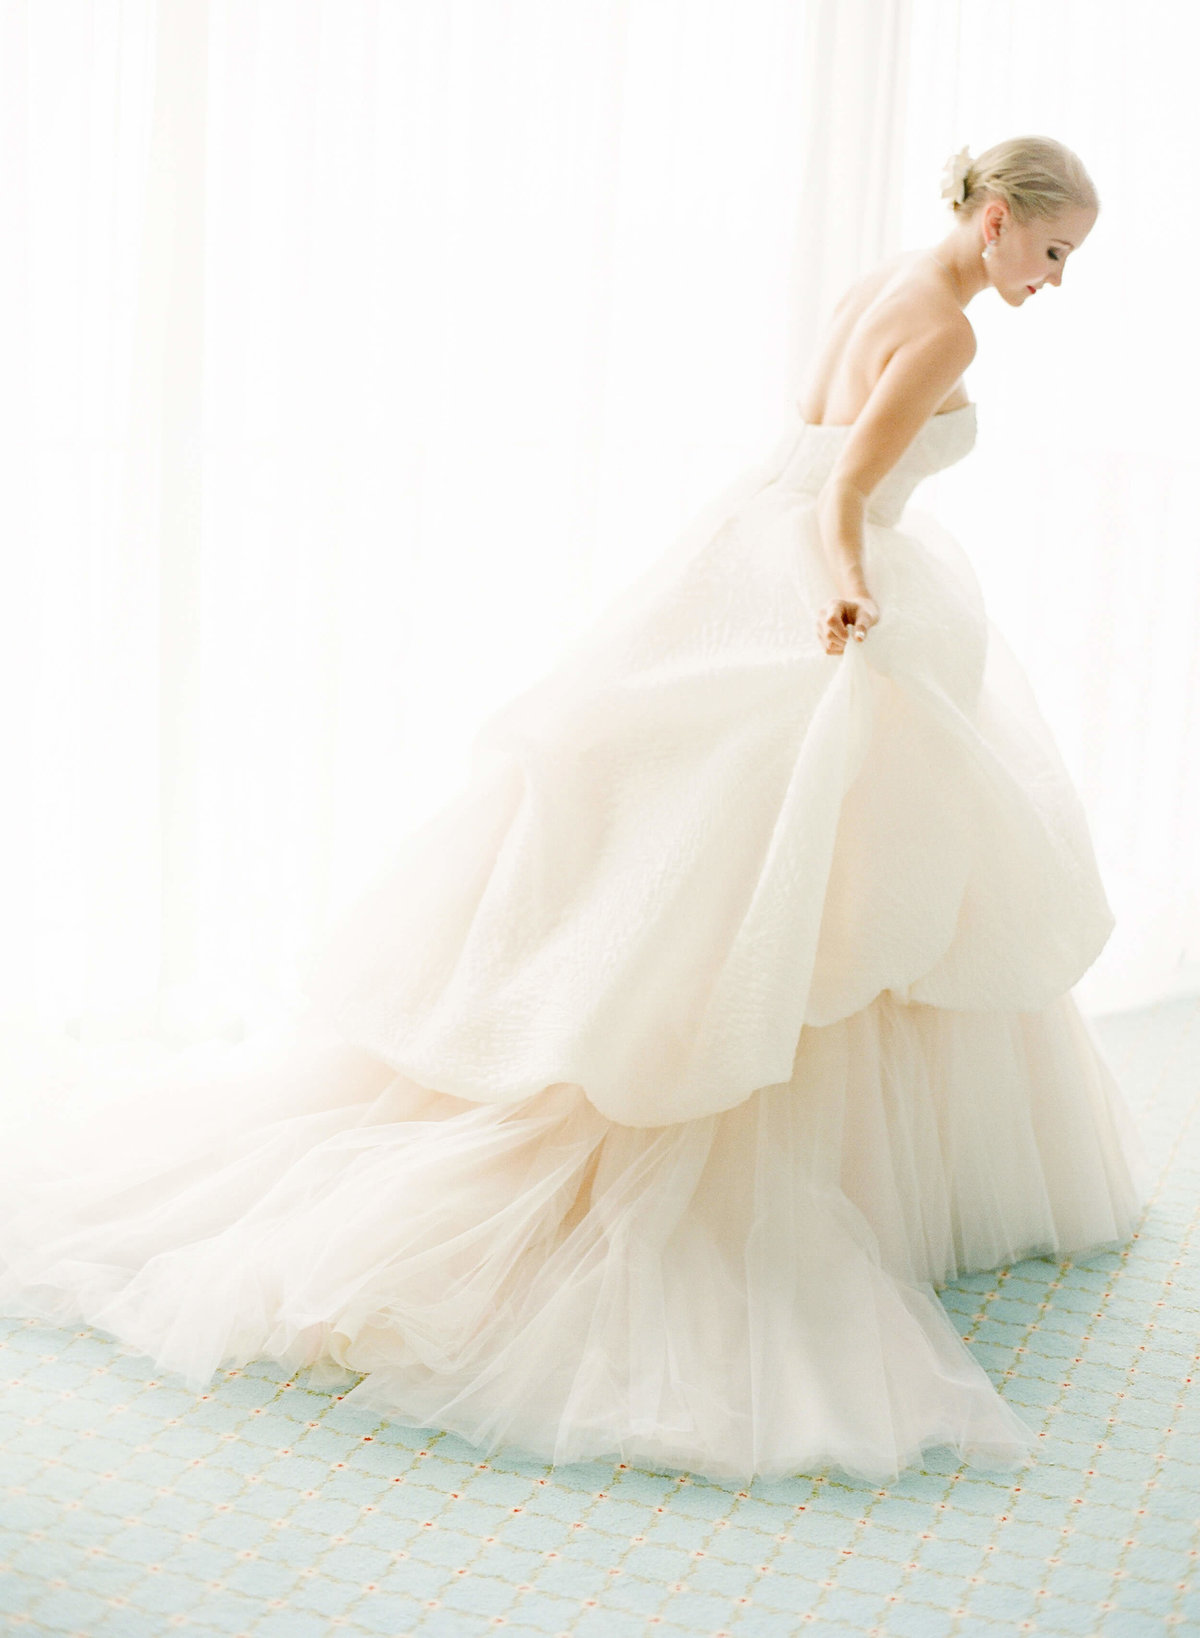 3-KTMerry-weddings-bridall-ball-gown-Palm-Beach